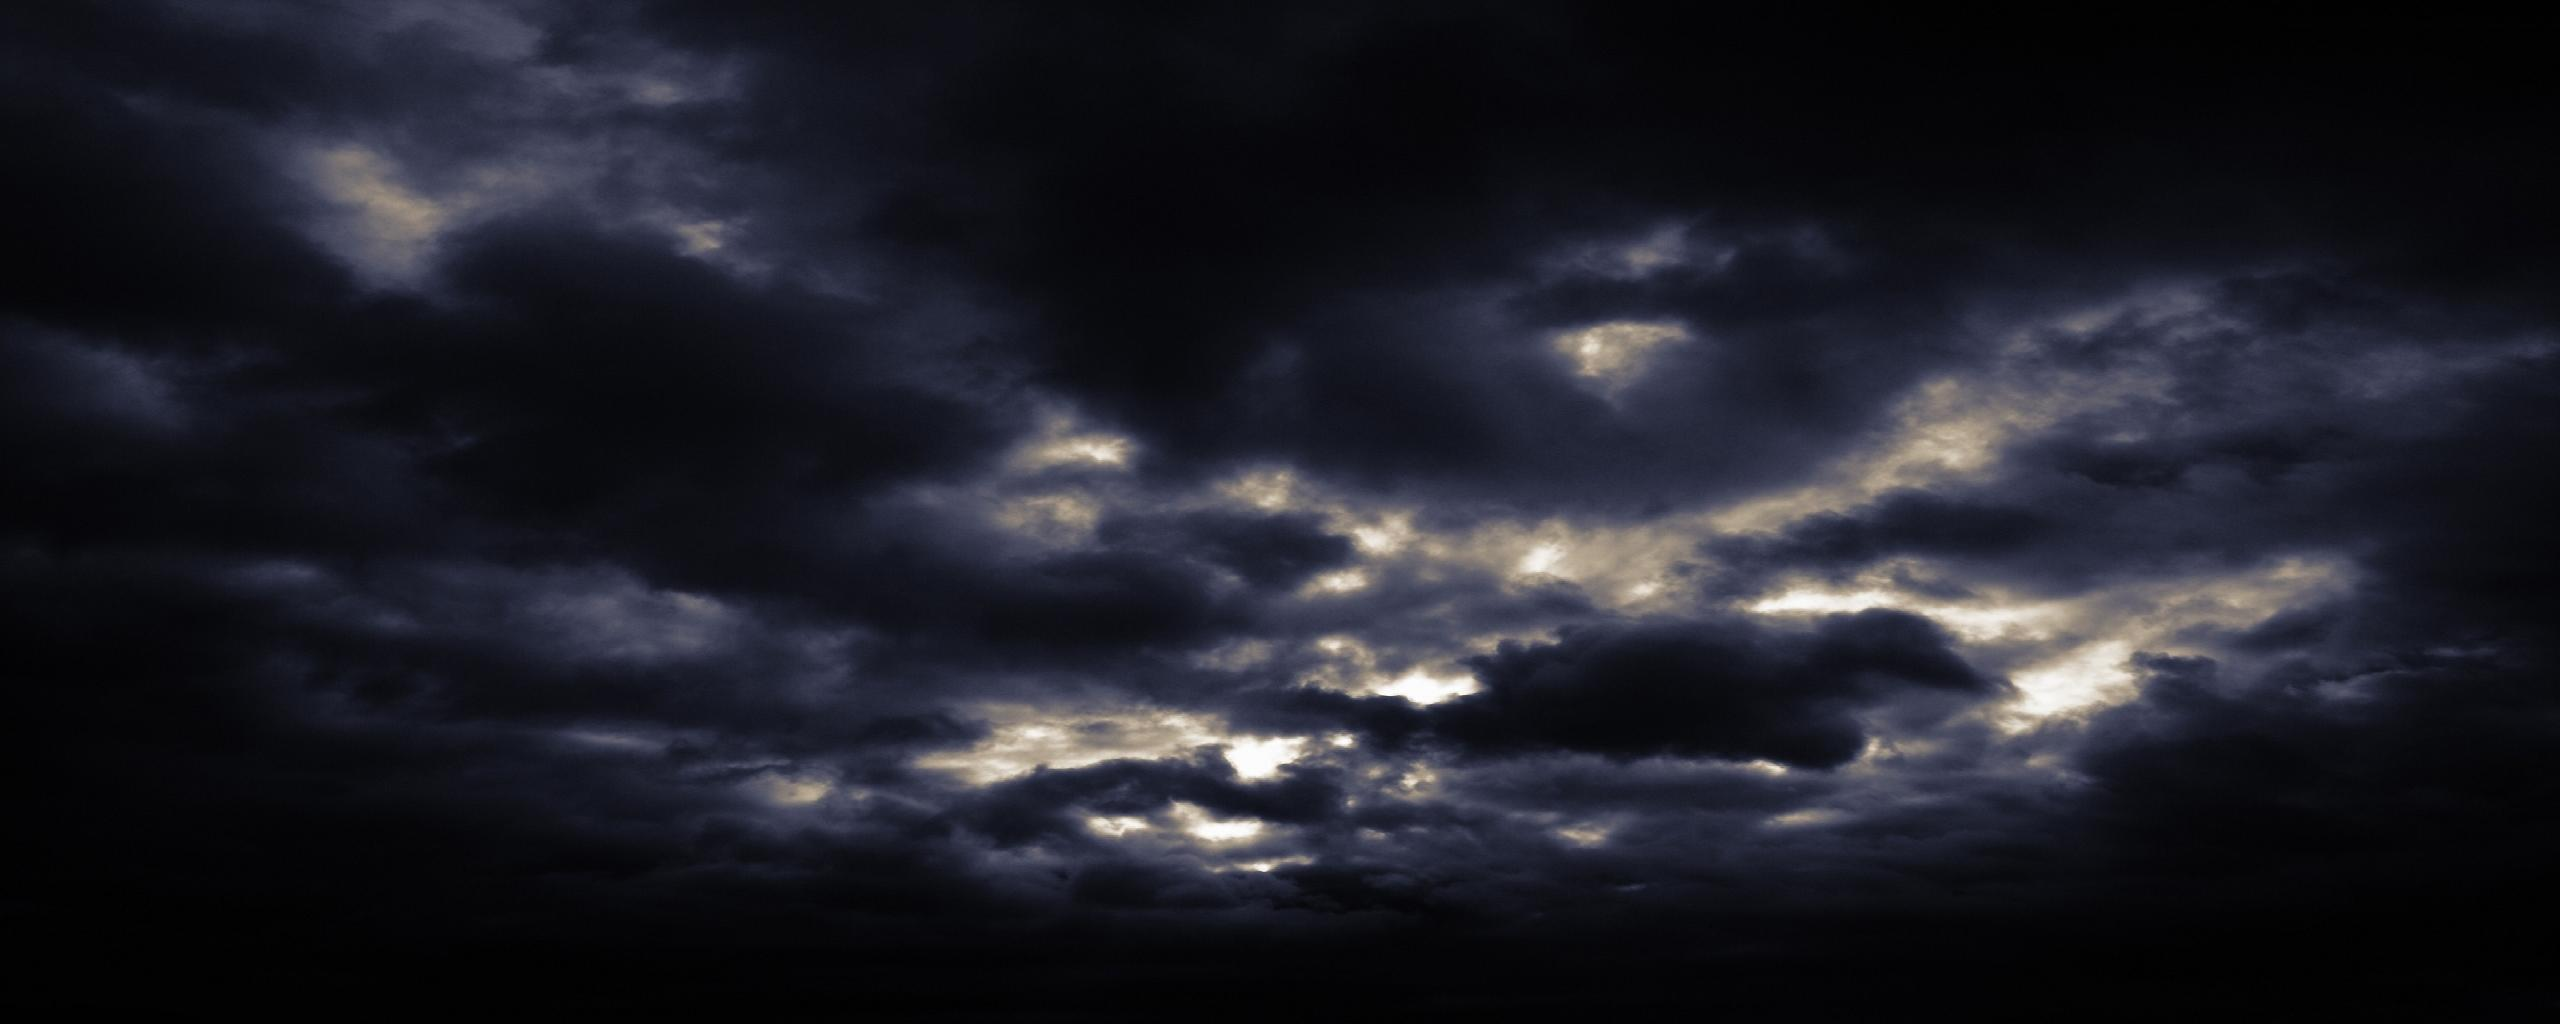 Dark Sky Backgrounds - Wallpaper Cave